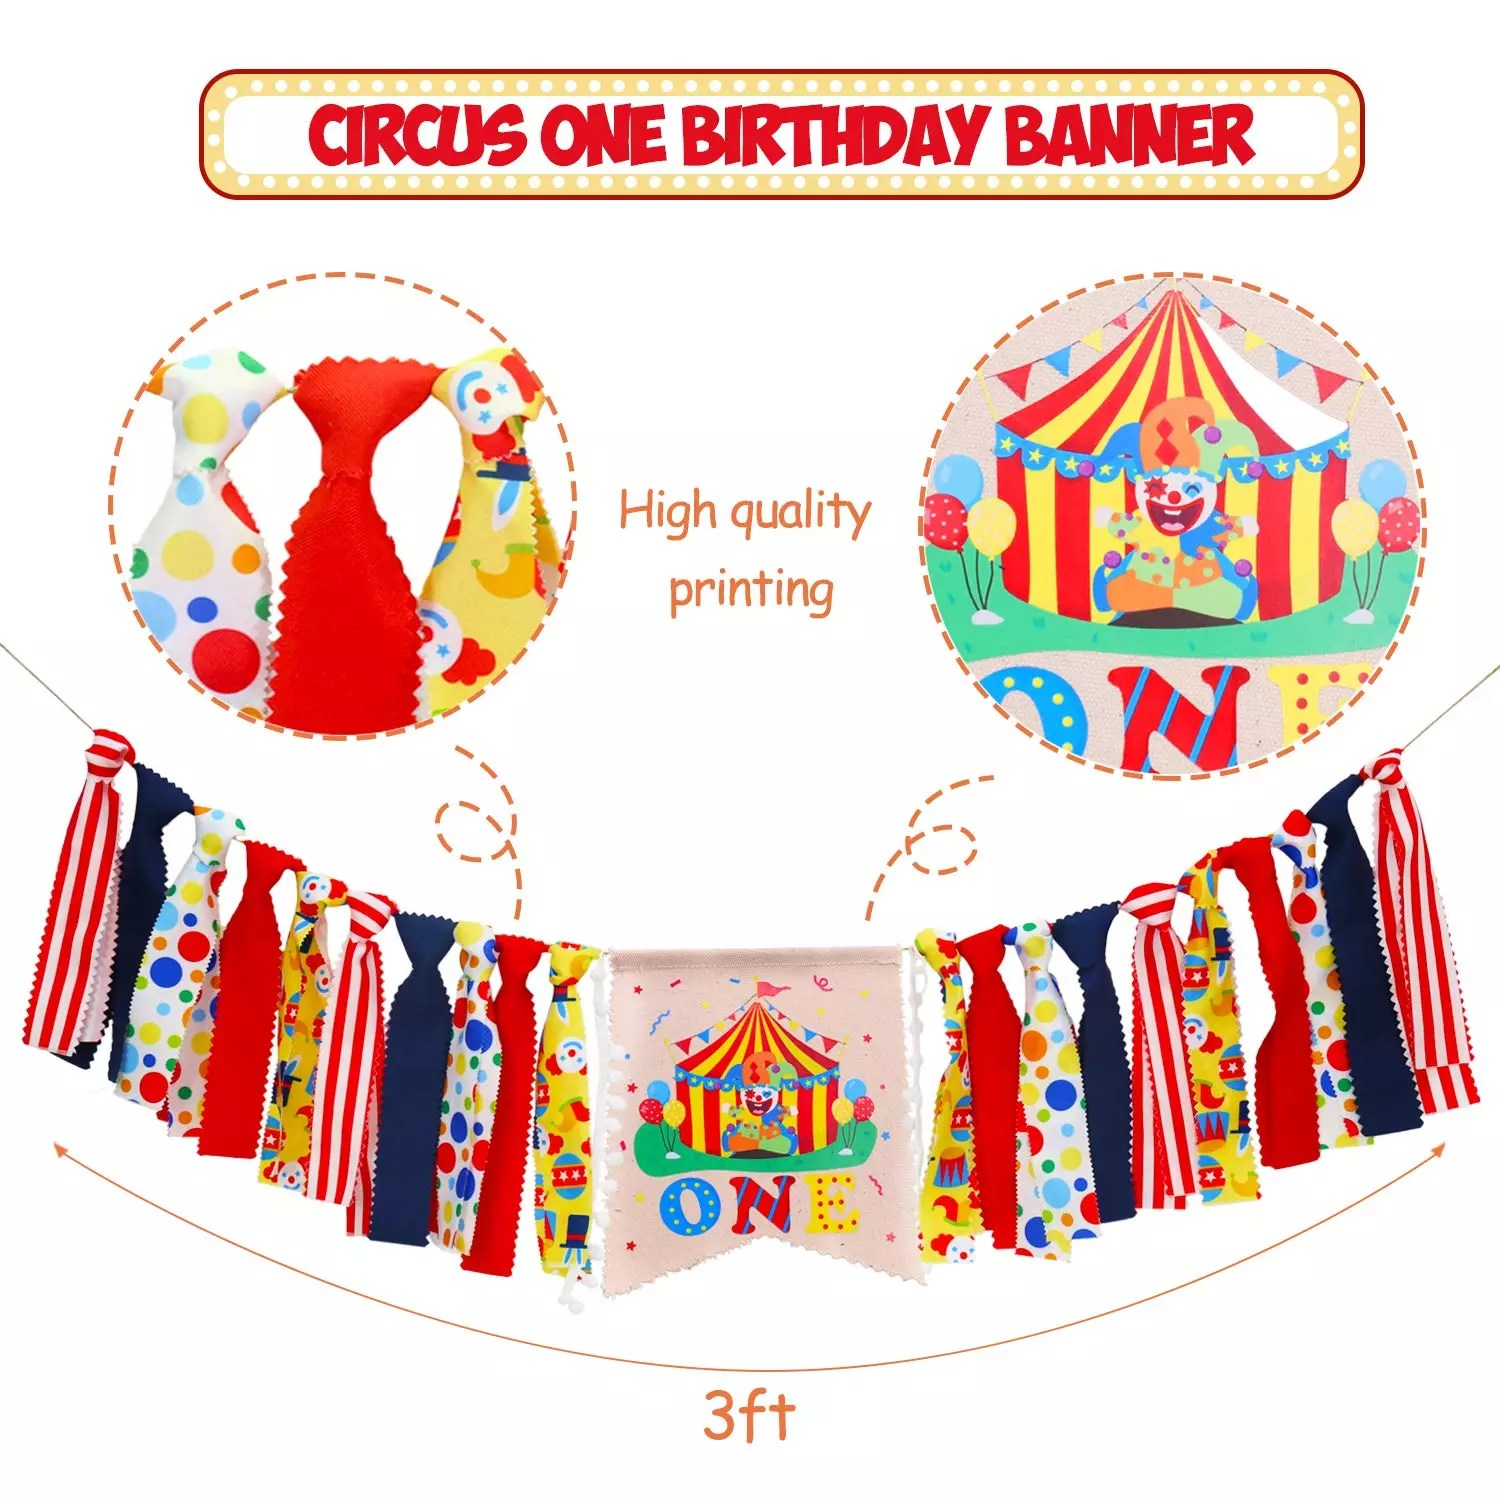 Easternhope Circus Carnival Theme 1st Birthday Banner 1st Birthday Decorations Buy 1st Birthday Decorations 1st Birthday Party Supply Circus Party Decoration Product On Alibaba Com